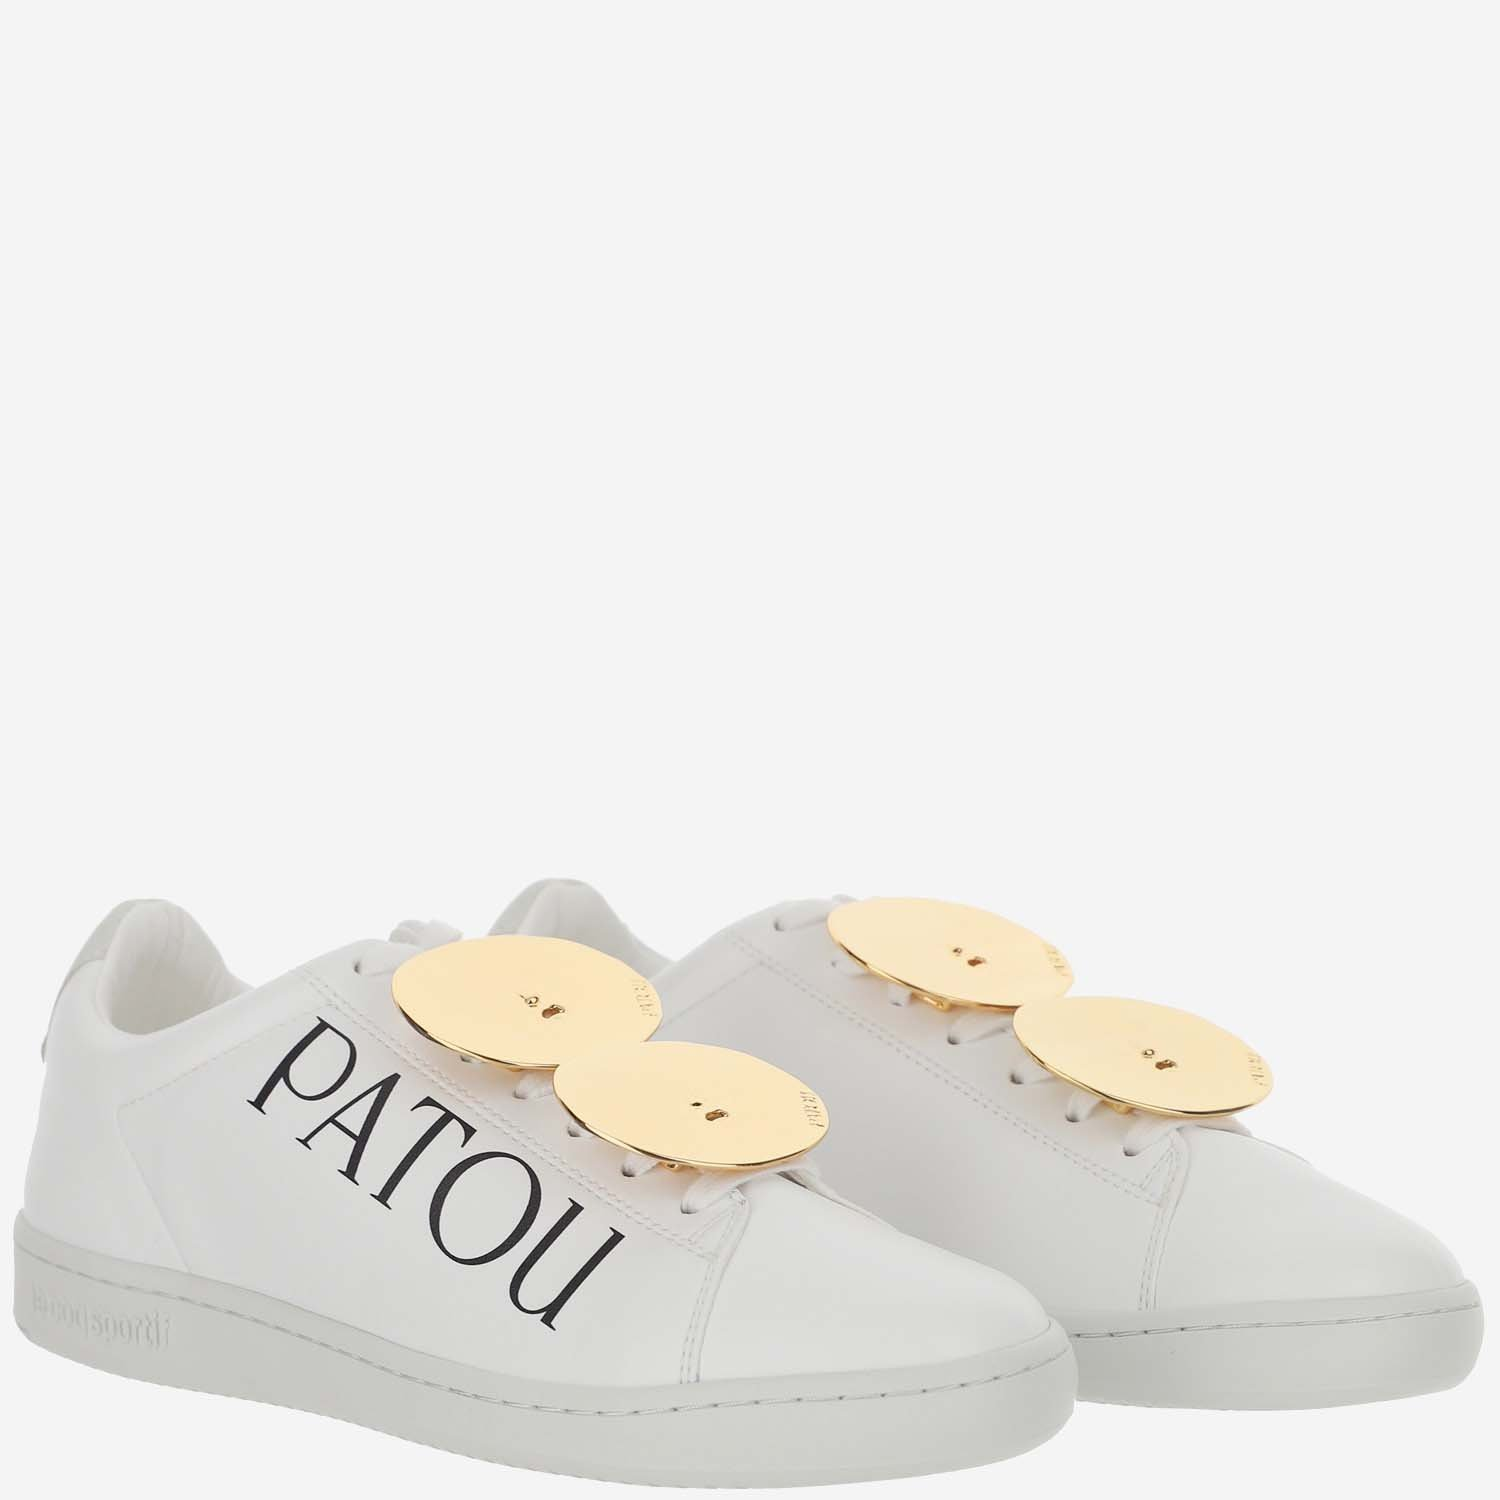 shop patou shoes